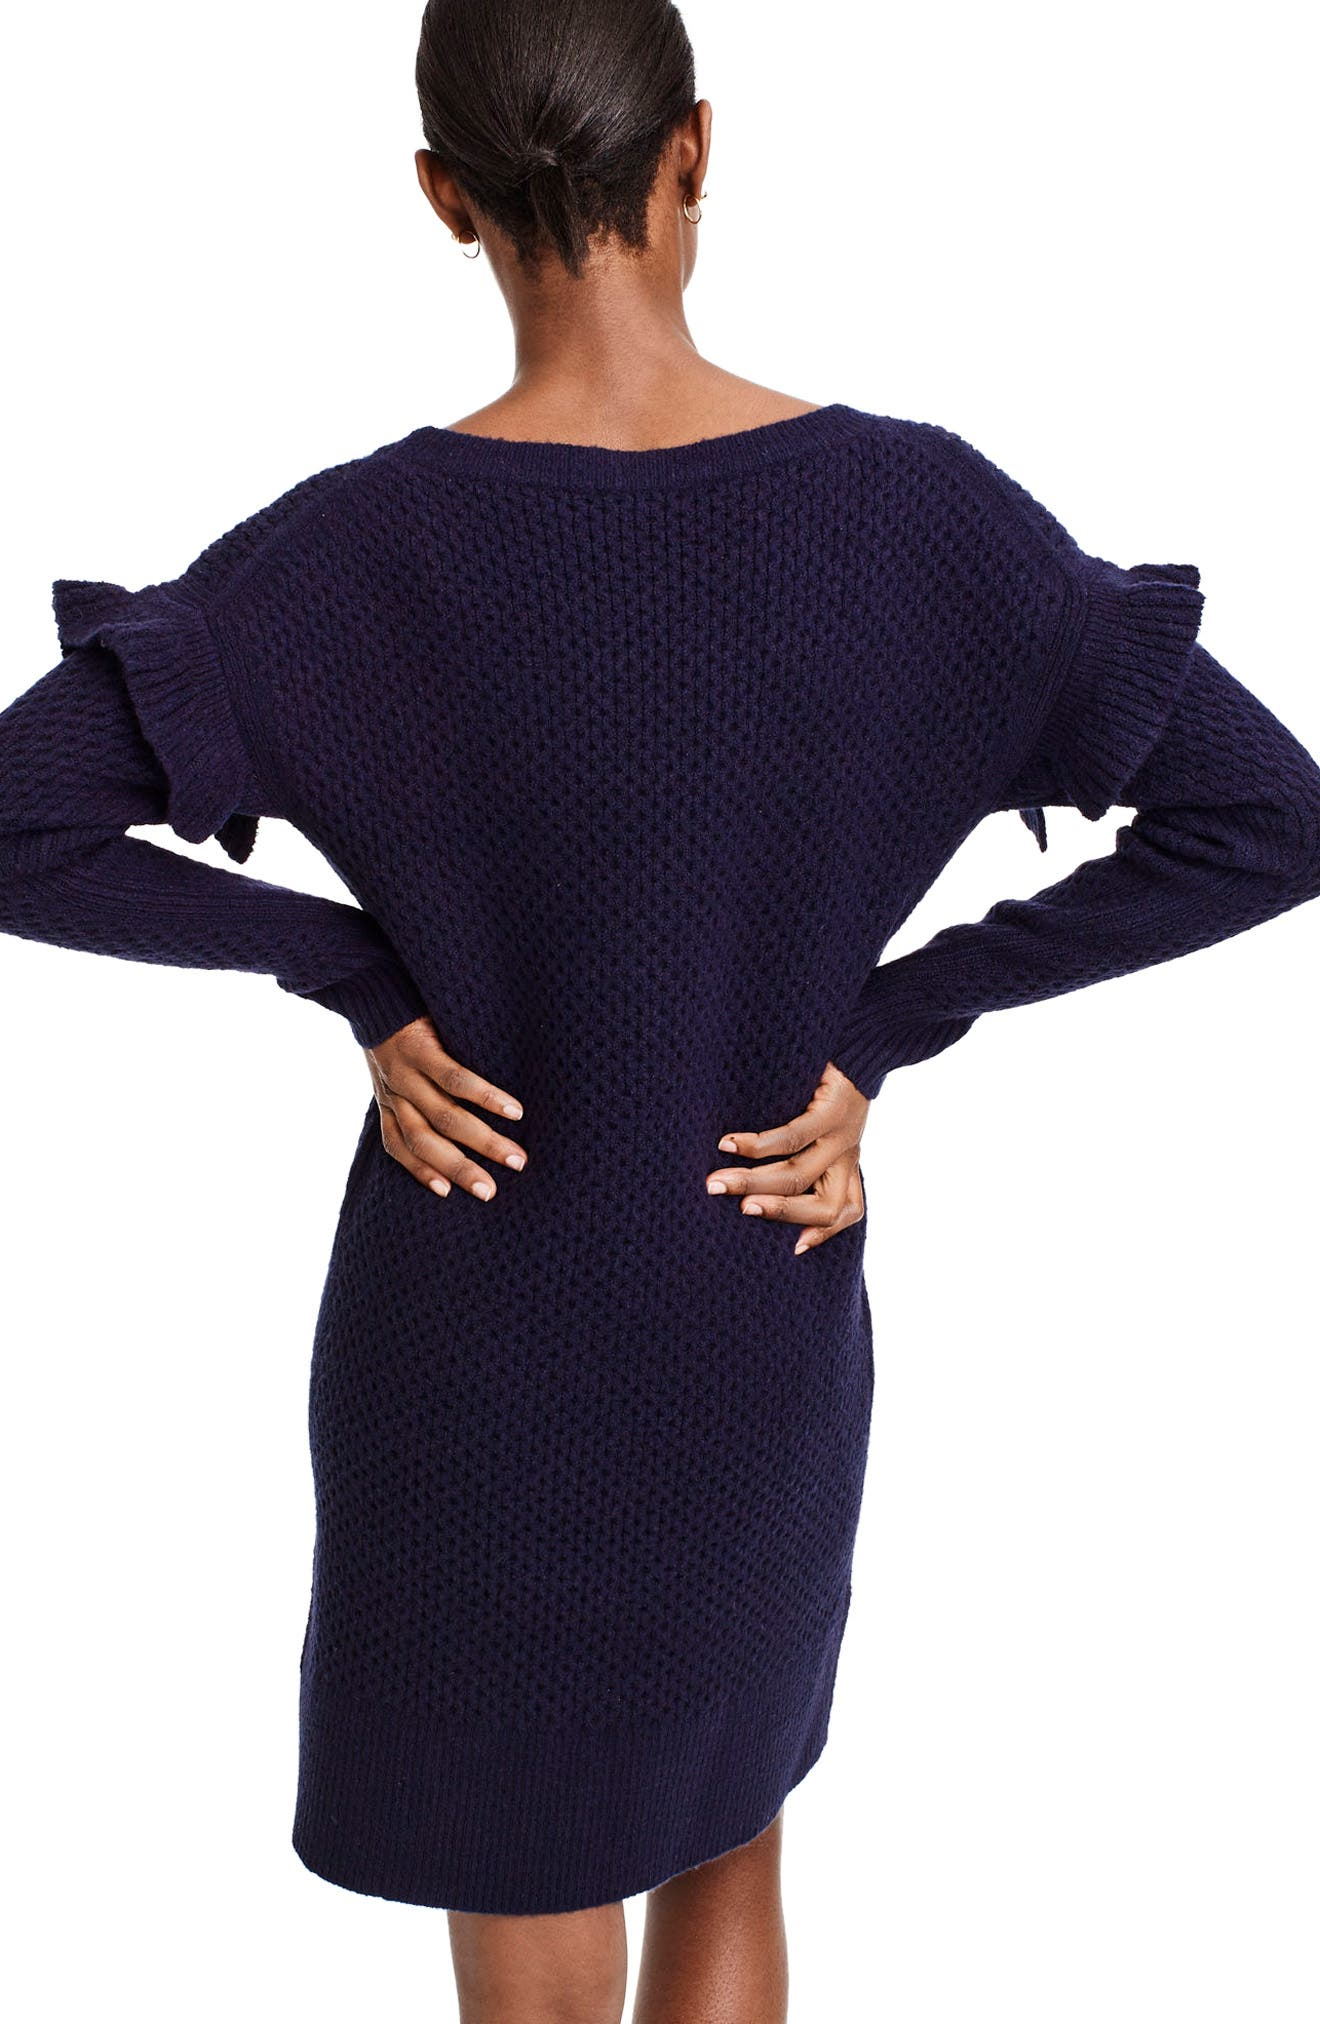 Holden Ruffle Sleeve Cable Knit Sweater Dress,                             Alternate thumbnail 2, color,                             Navy